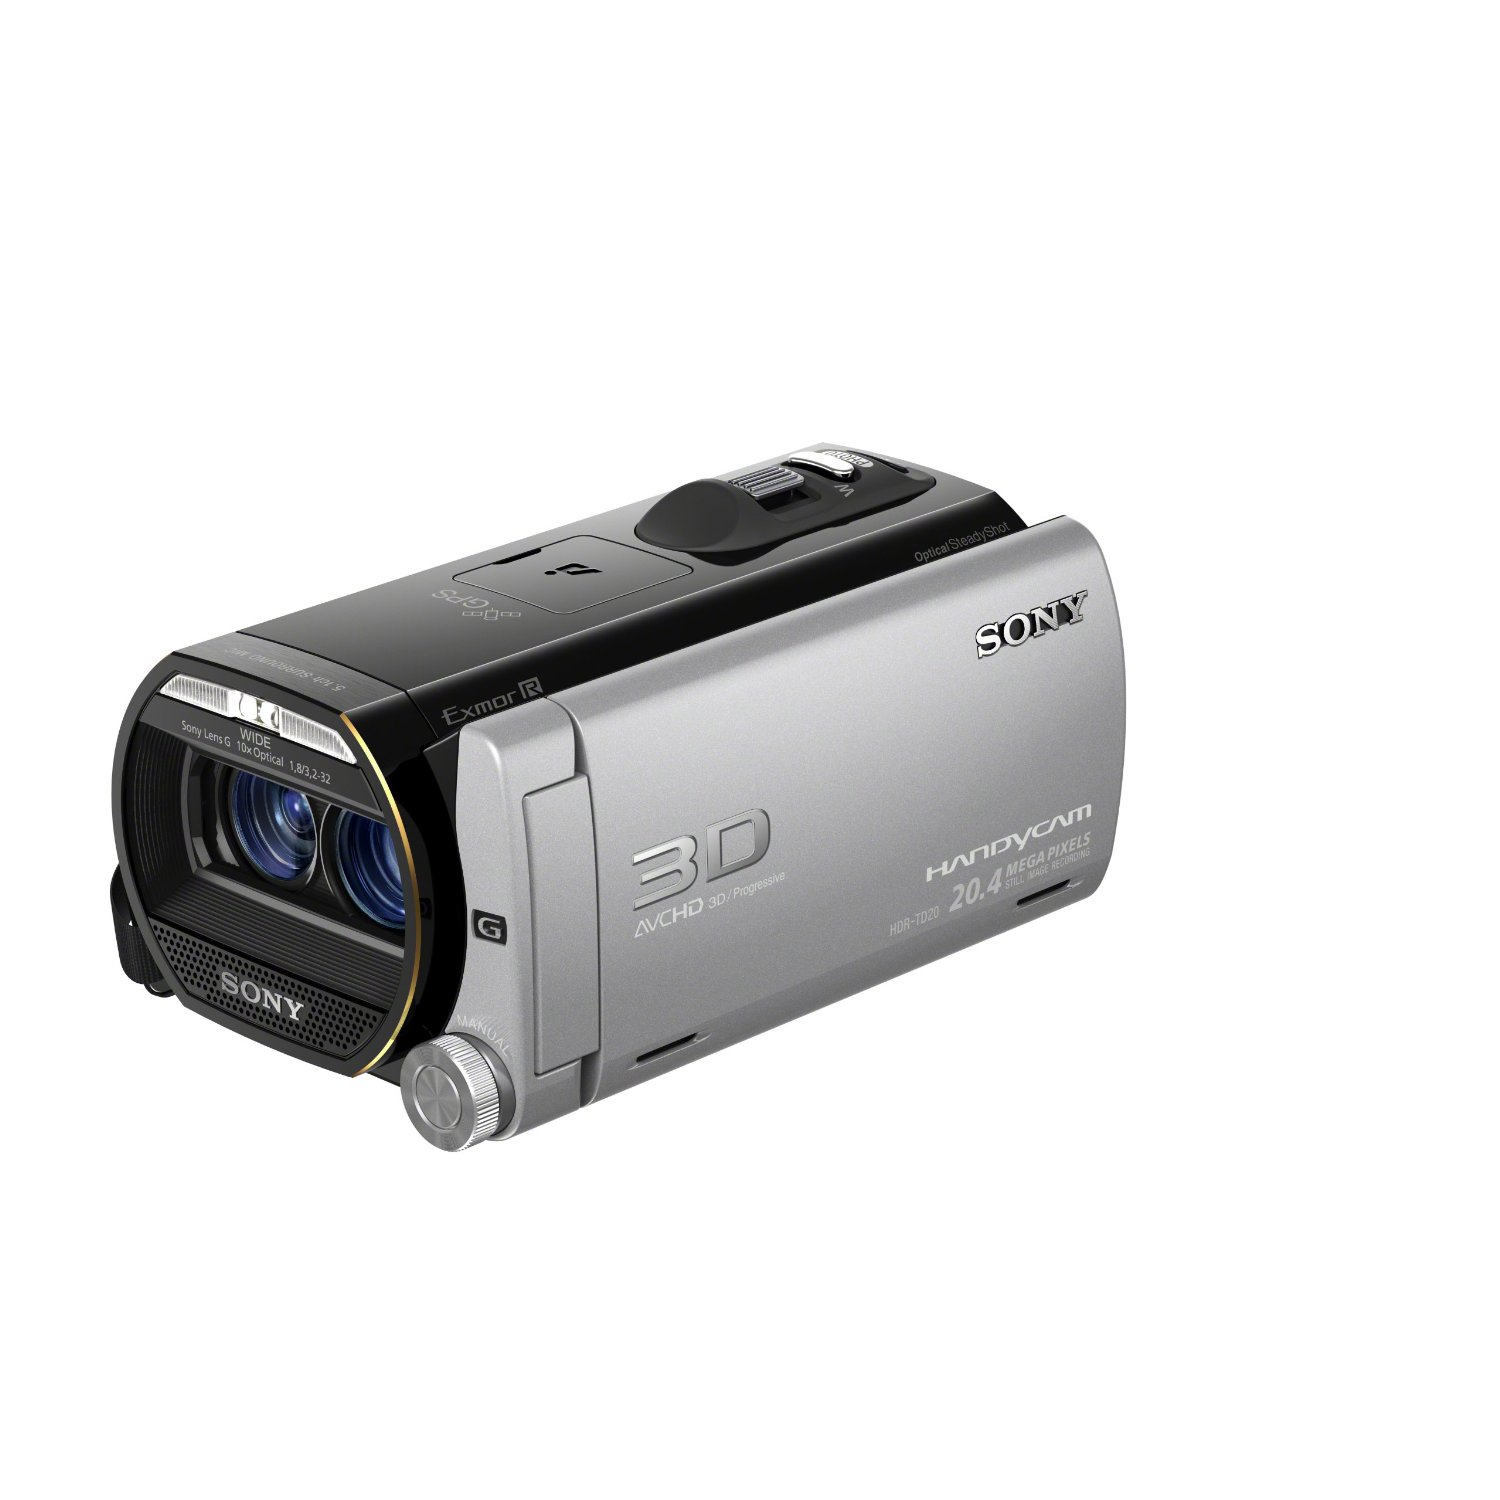 Smart Sony Brief Review Sony Unbiased Camcorder Advice 3d Video Camera 4k 3d Video Camera App dpreview 3d Video Camera